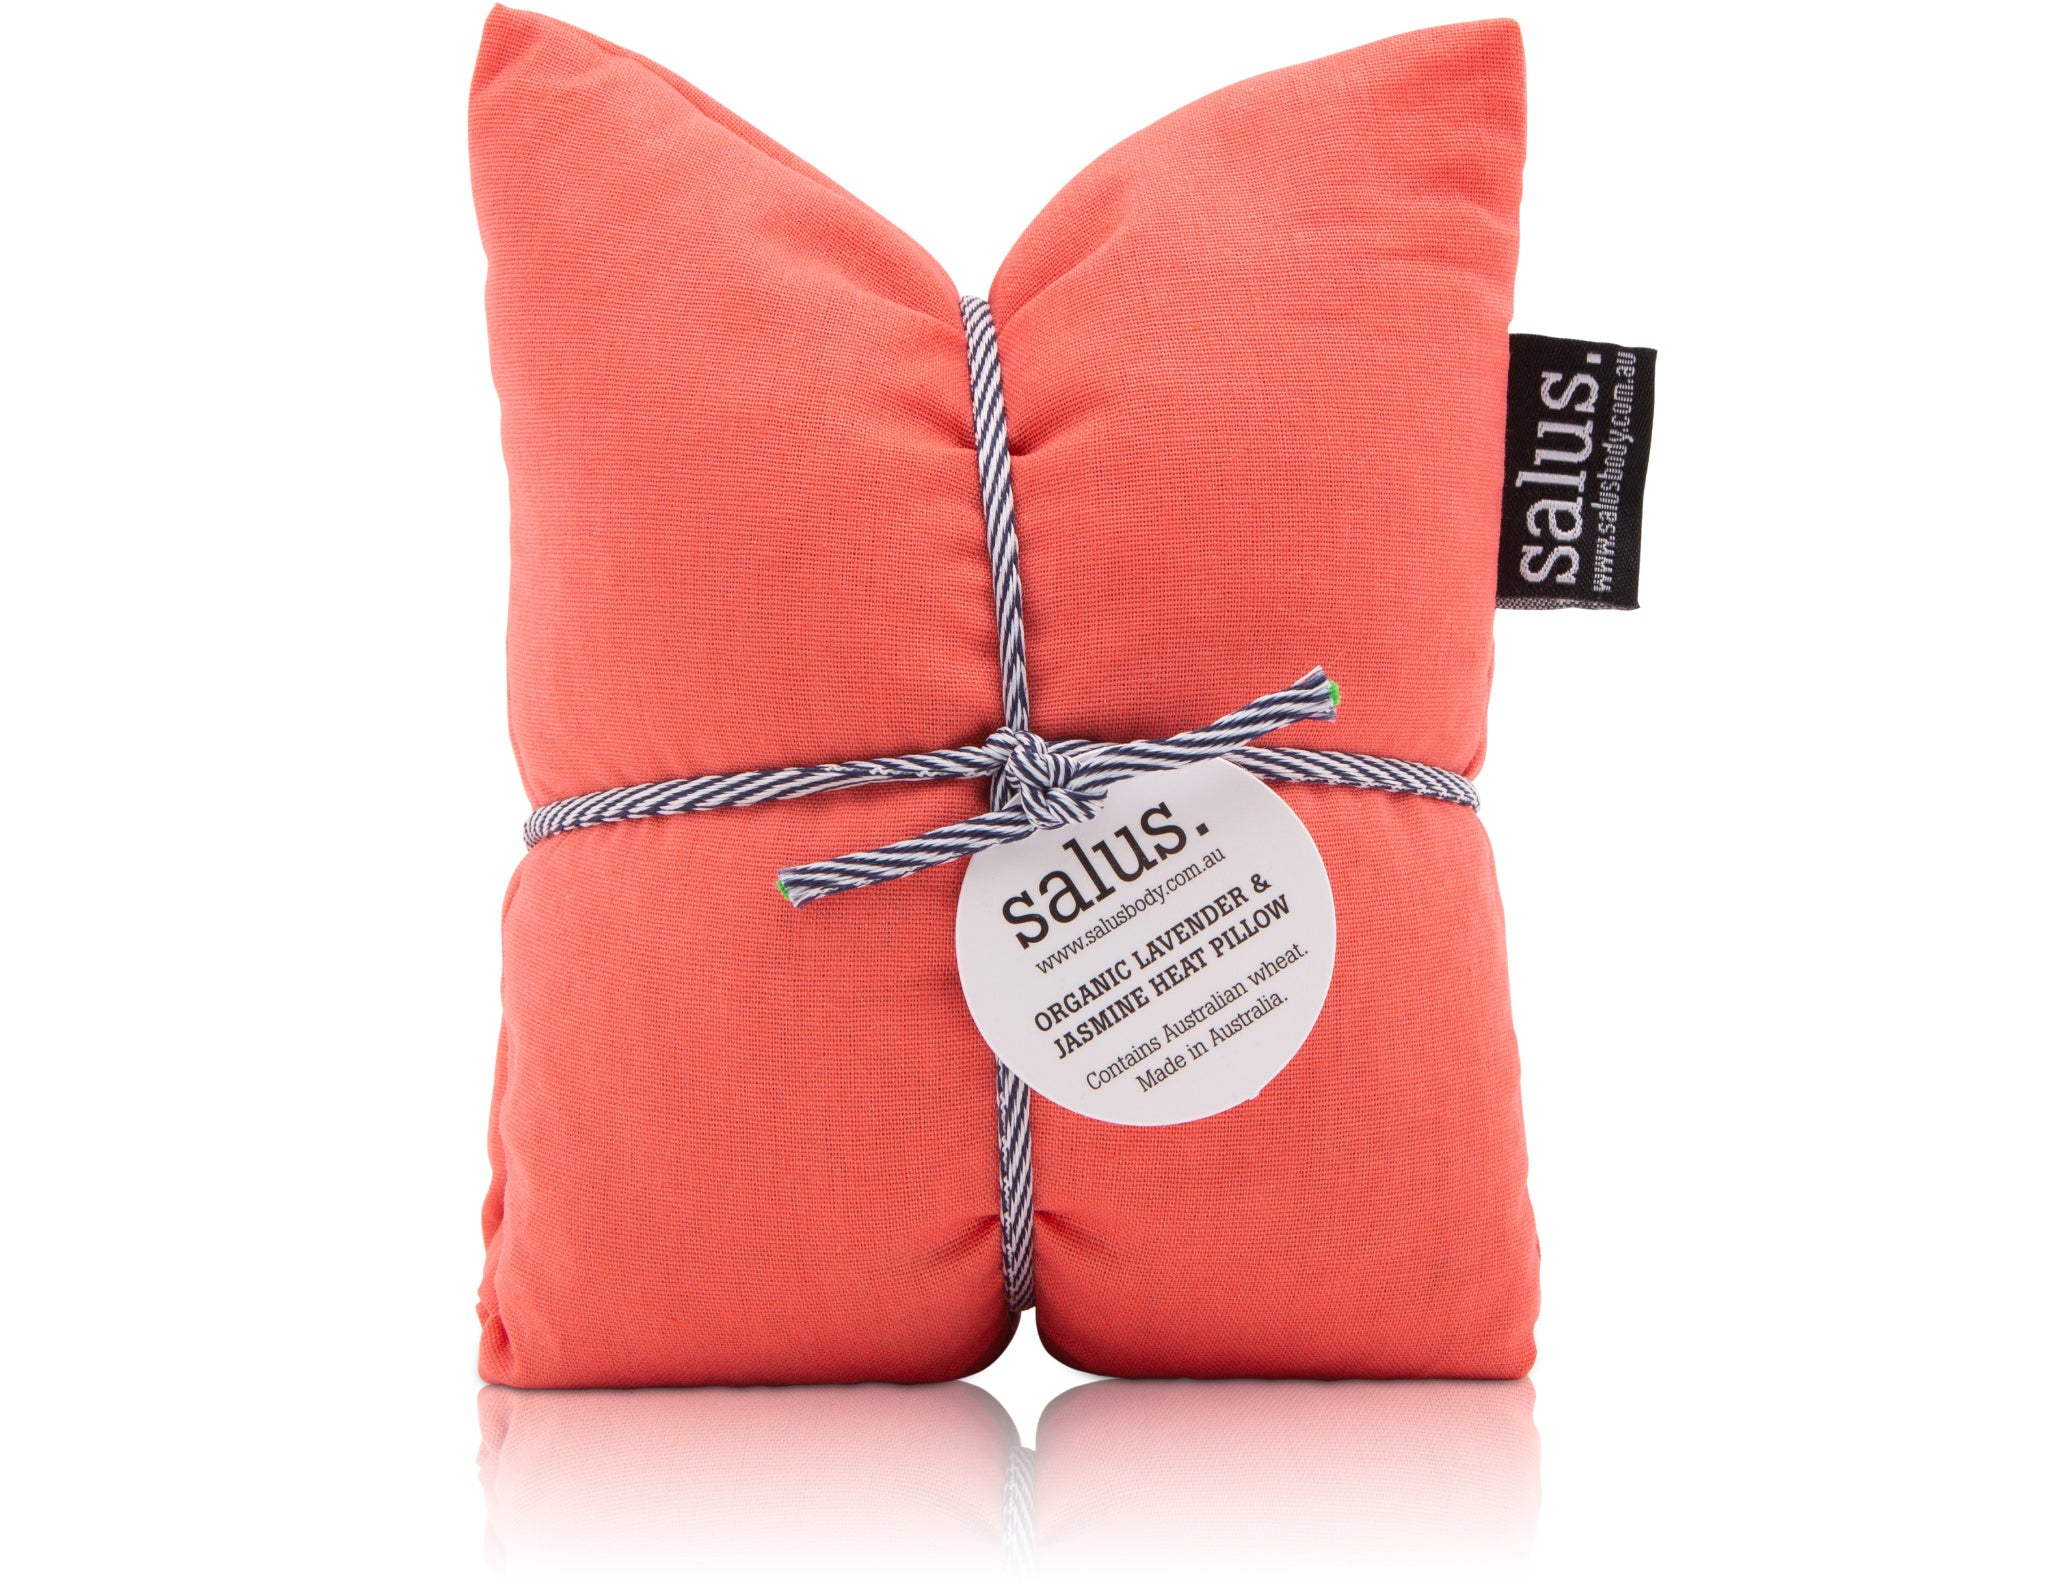 Coral Lavender & Jasmine Heat Pillow